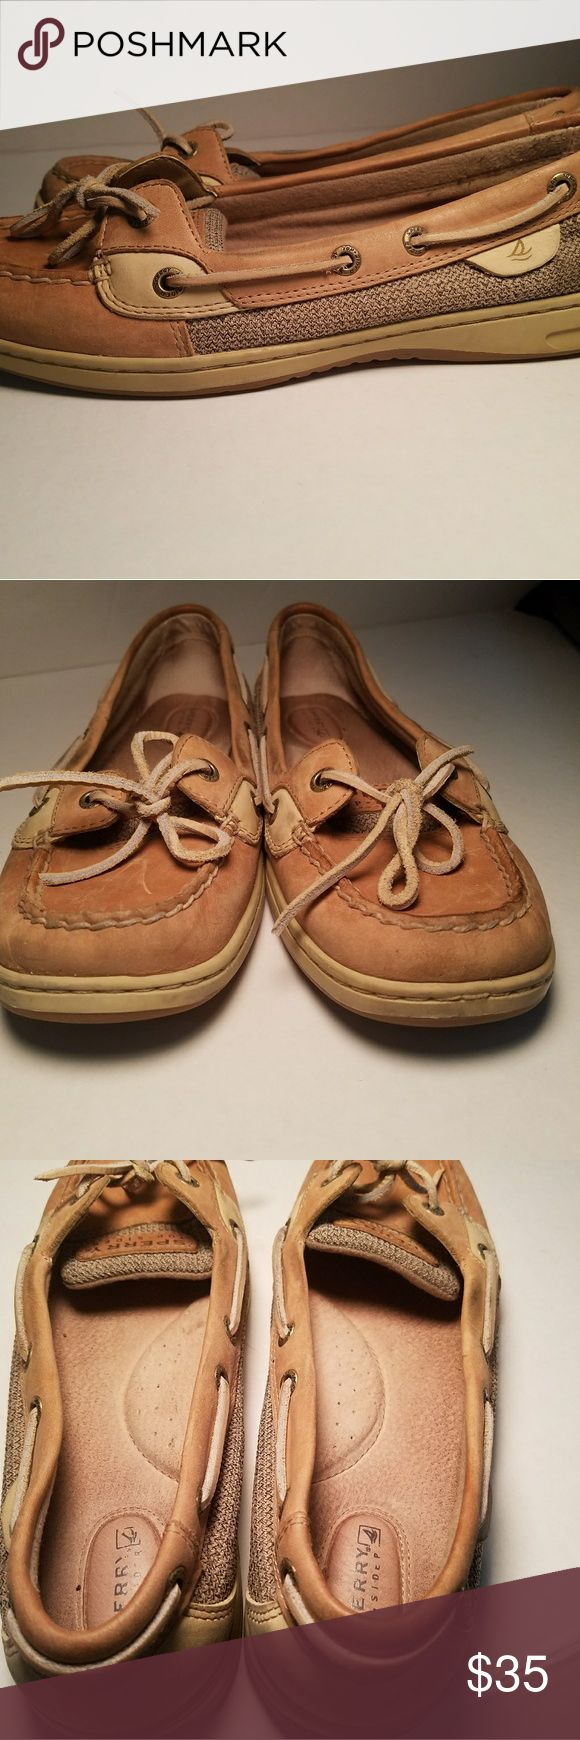 Sperry Angelfish sz Womens 10M Color tan Angelfish Boat shoes. Very little wear on the sole. Small scratch on the tounge, no stains or flaws on them. Sperry Shoes Flats & Loafers